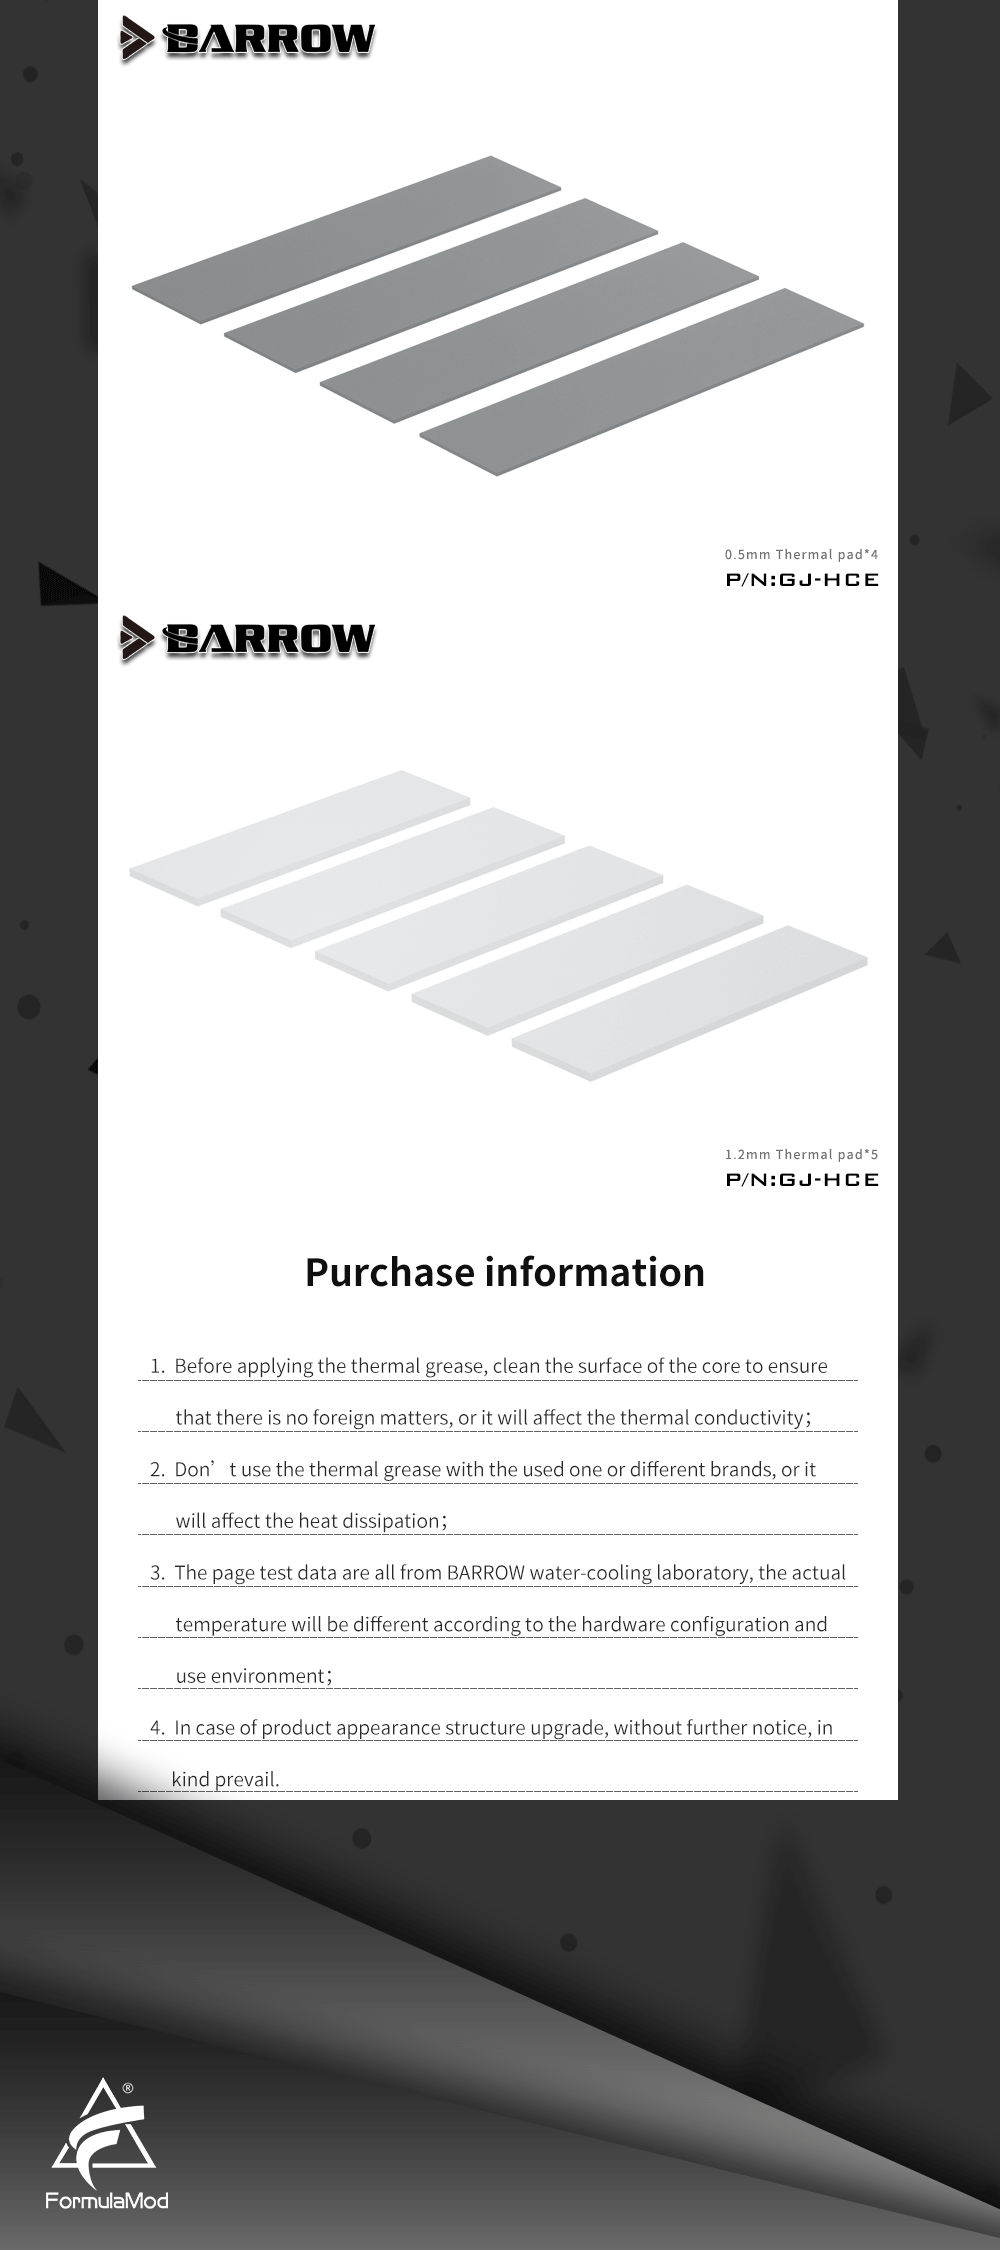 BARROW Silicon Grease Thermal Pad Kit For GPU Water Cooling Block Heat Dissipation, High Performance Conductive Heatsink, GJ-HCE